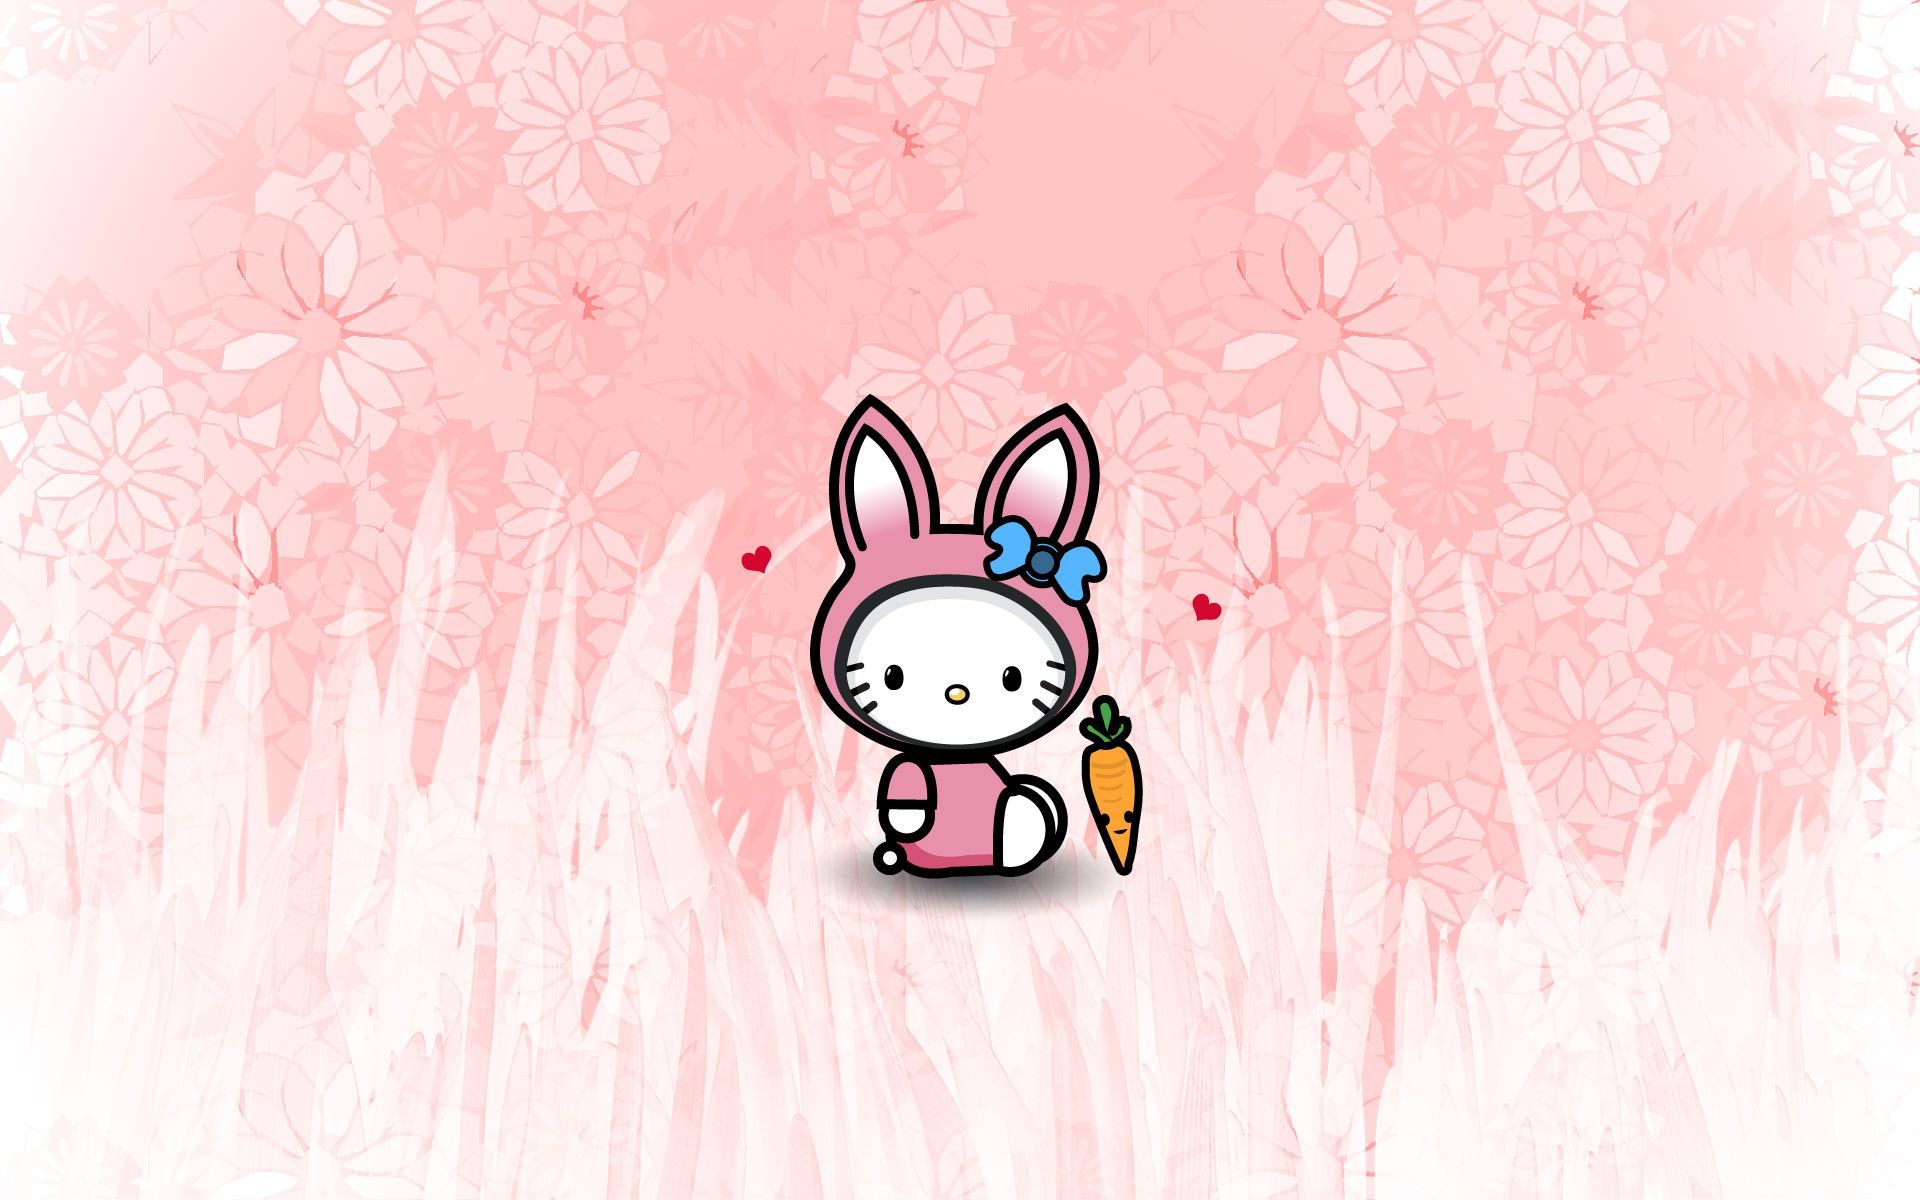 Beautiful Wallpaper Hello Kitty Computer - f75e6632c2ad7758d9b118916a187f50  You Should Have_675414.jpg